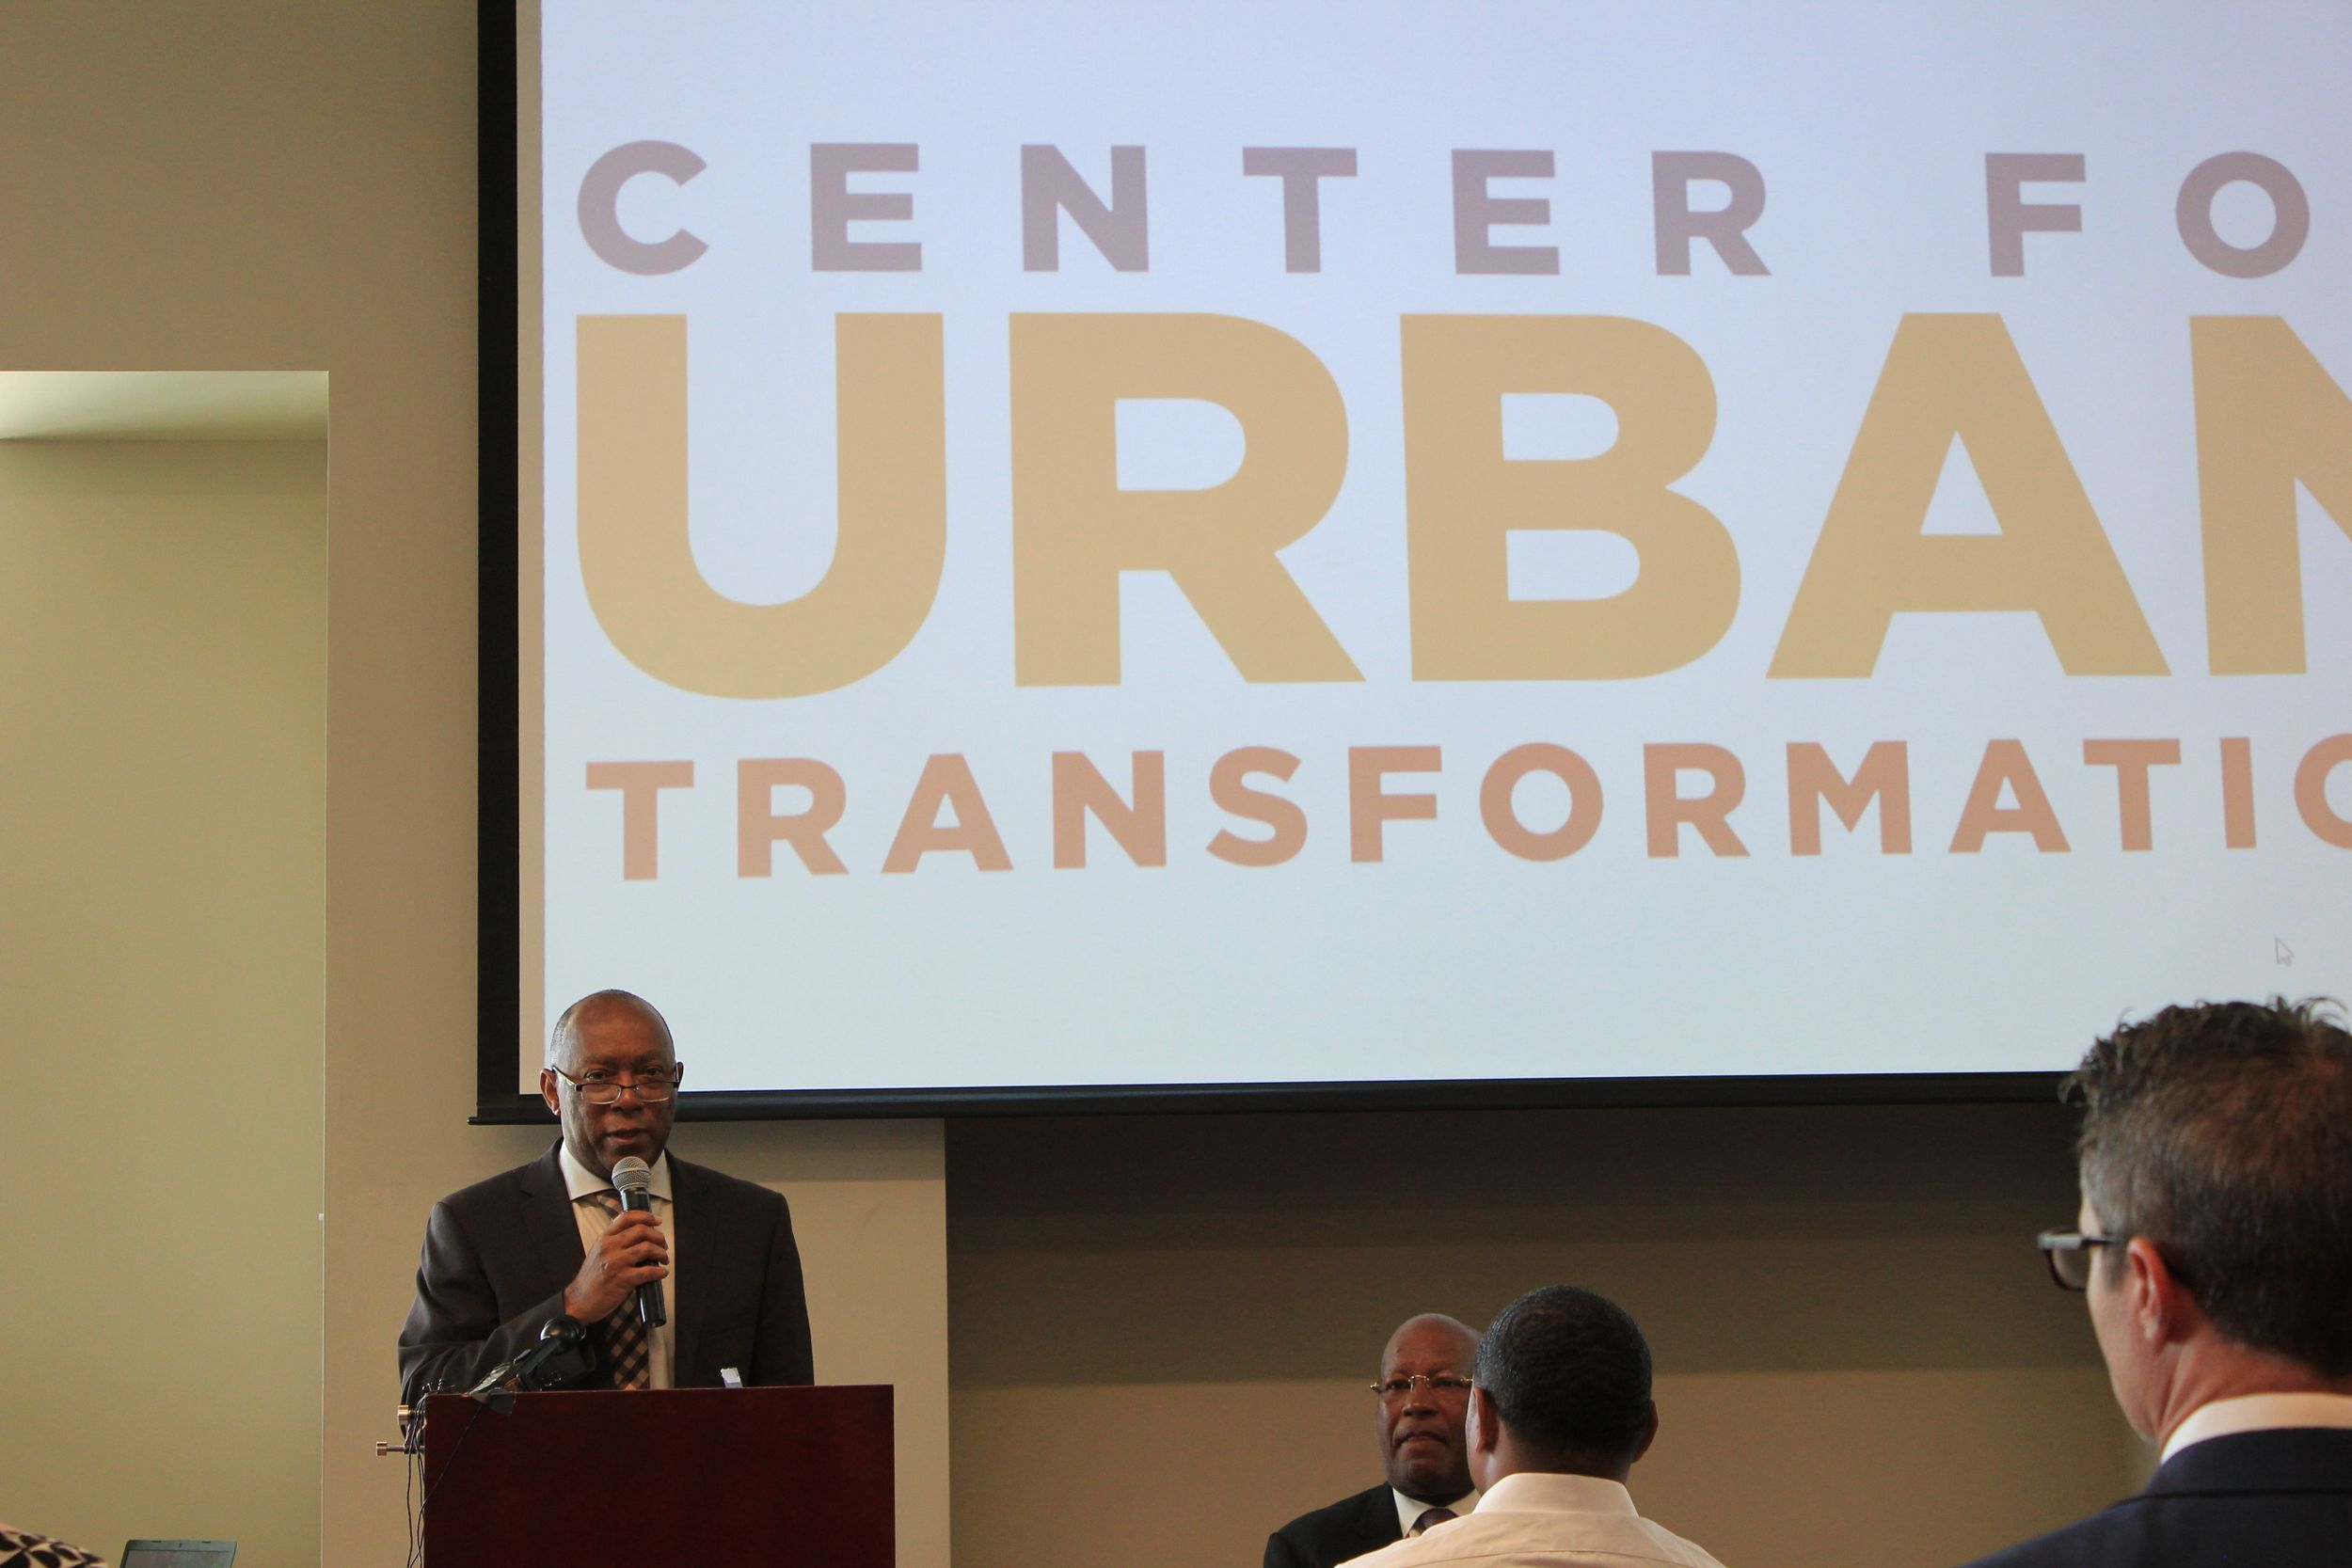 Houston Mayor Sylvester Turner introduces the Center for Urban Transformation at a press conference